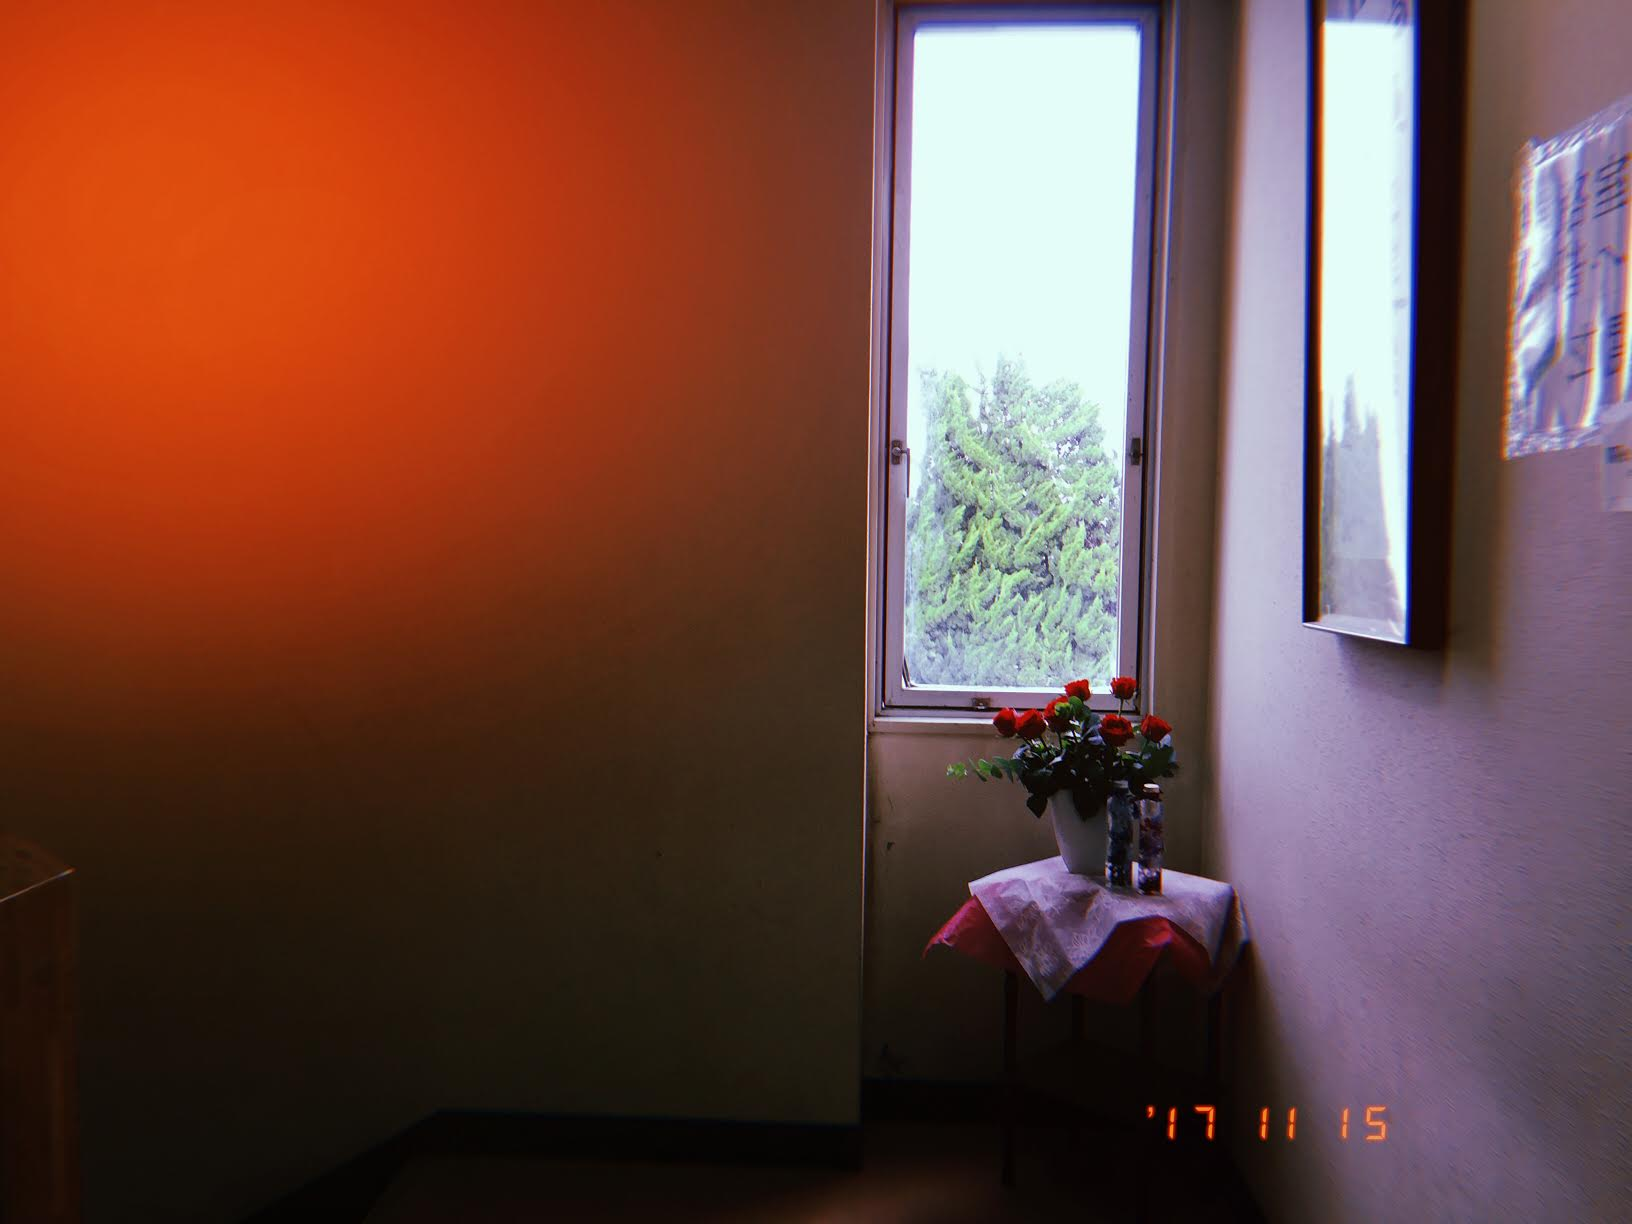 The teacher in charge of the 生花 (flower arranging) club at school always leaves beautiful flowers in the corners of the stair landings.